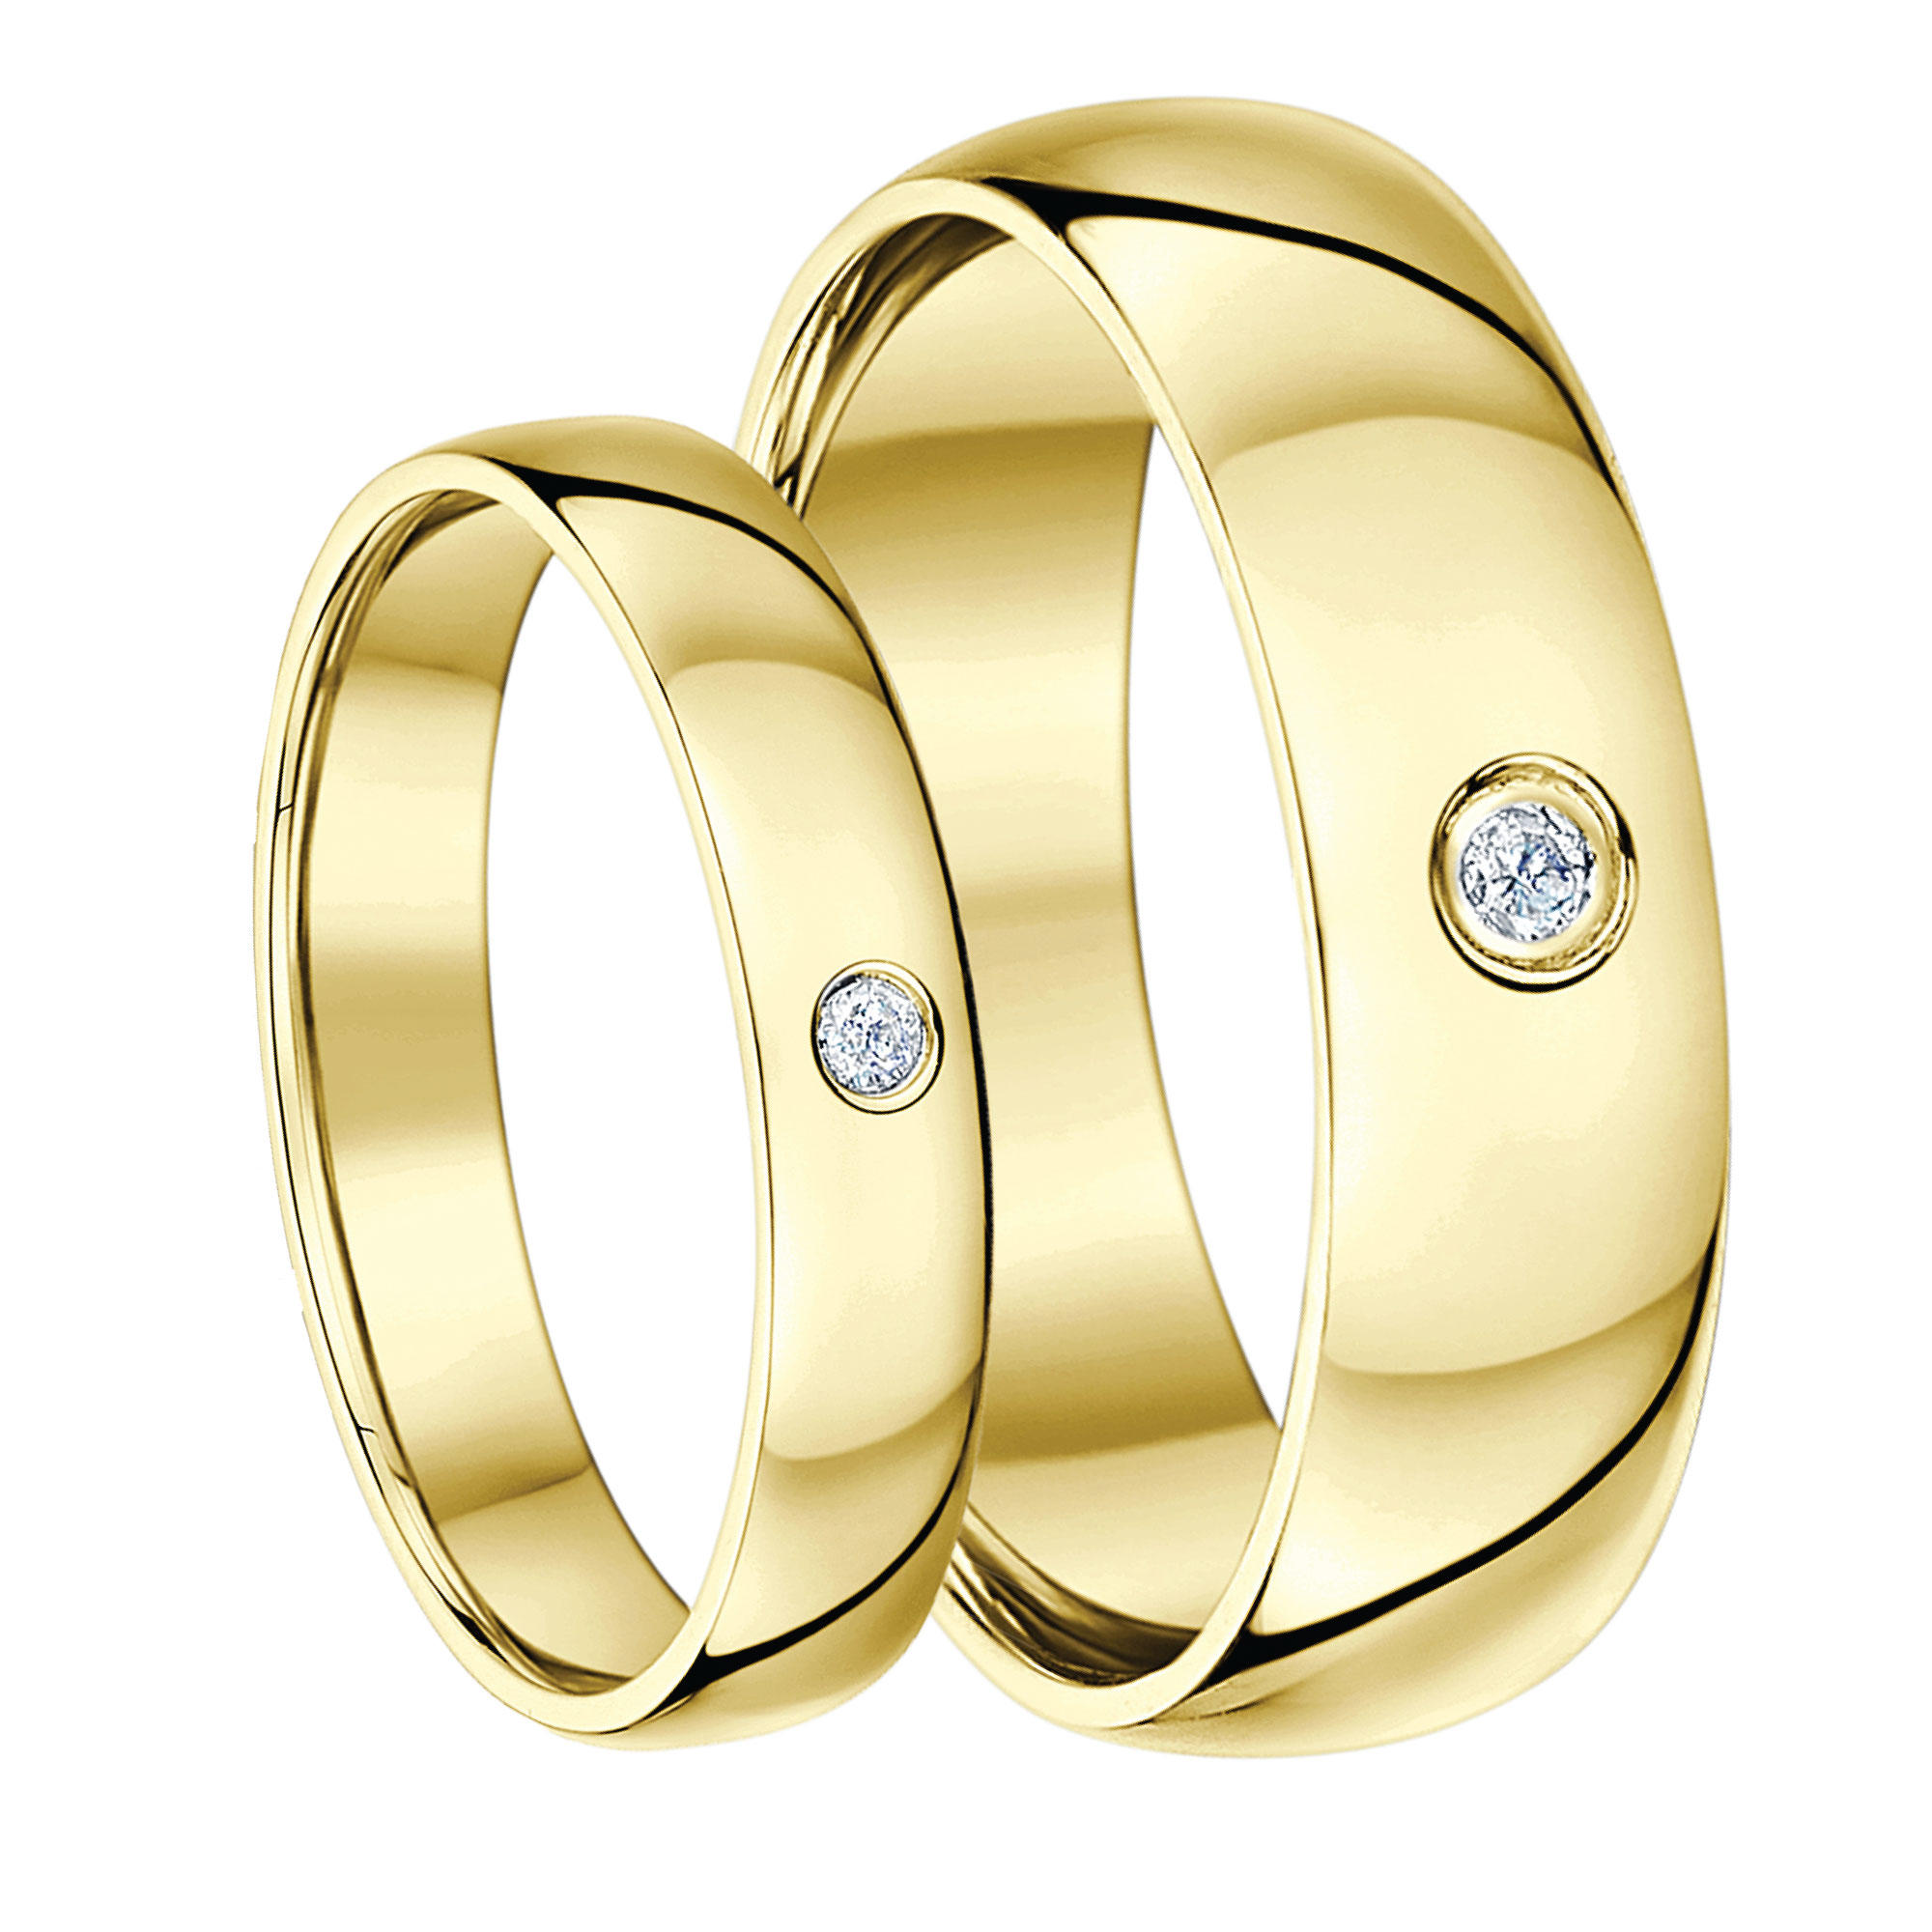 Matching Yellow Gold Wedding Ring Sets His Hers Sets For Groom